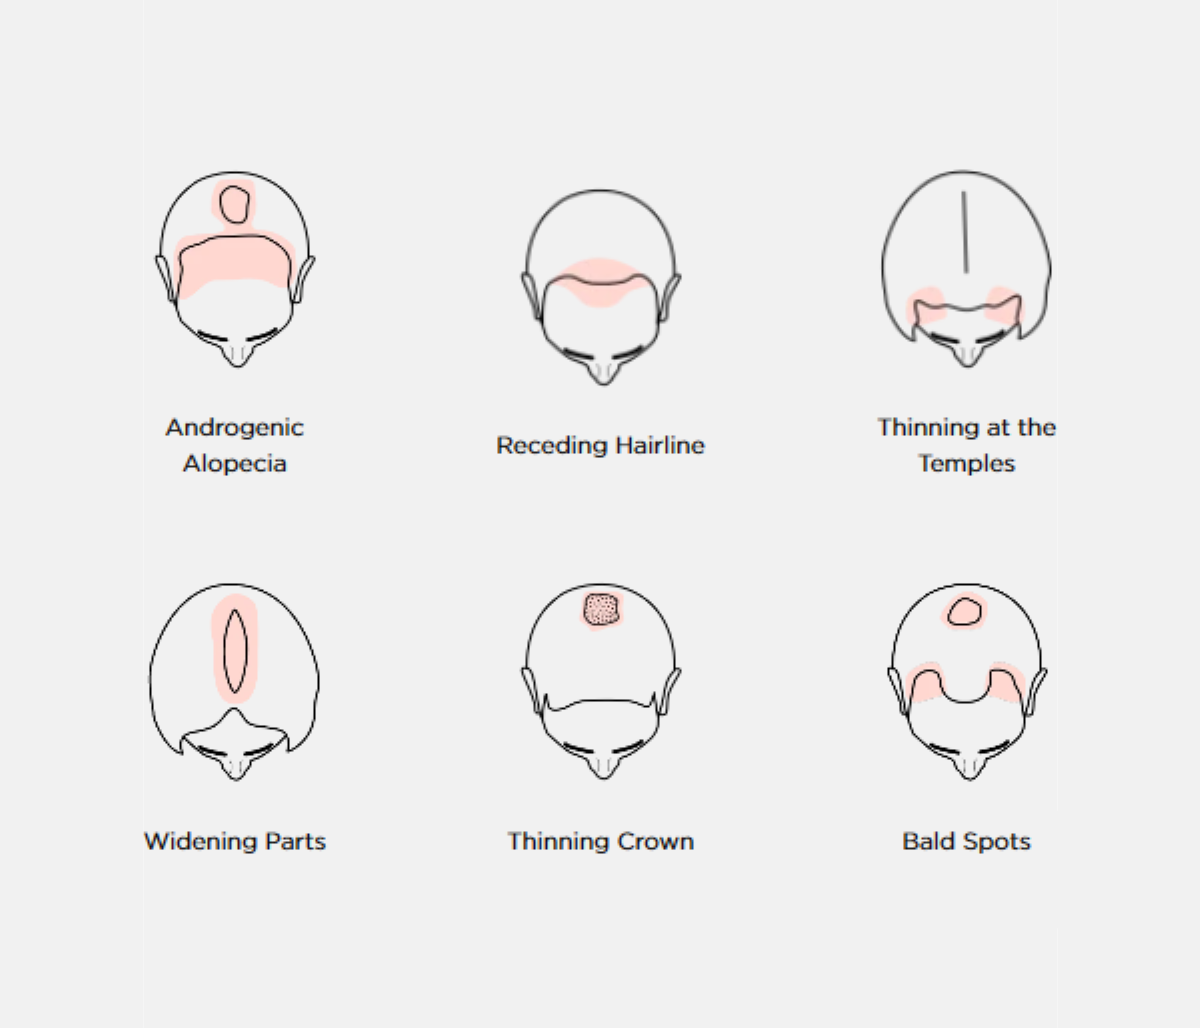 The iRestore Professional can help fight 6 Different Hair Loss Conditions